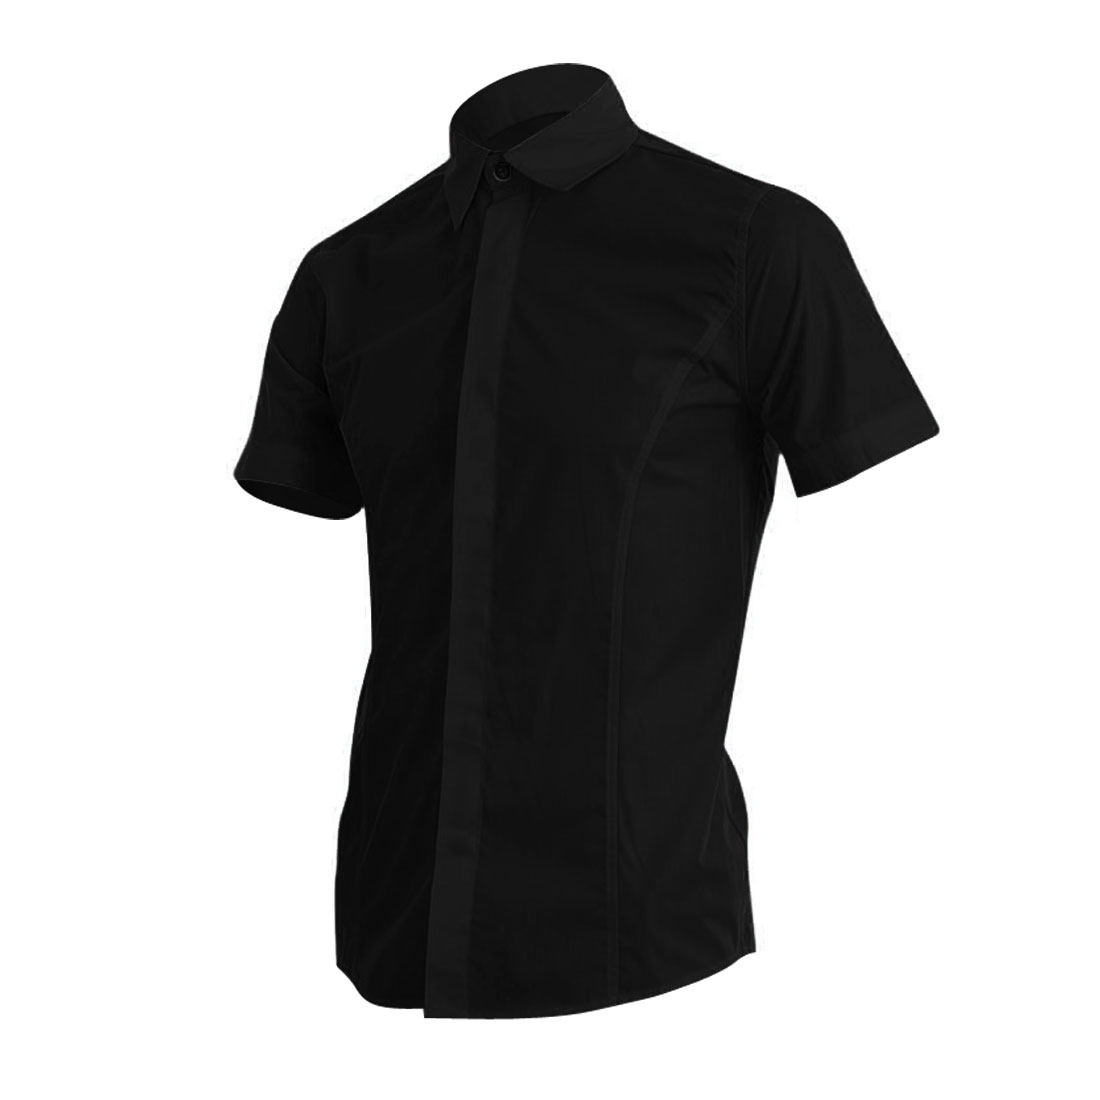 Men Stylish Short-sleeved Buttons Front Fashion Tops Black M